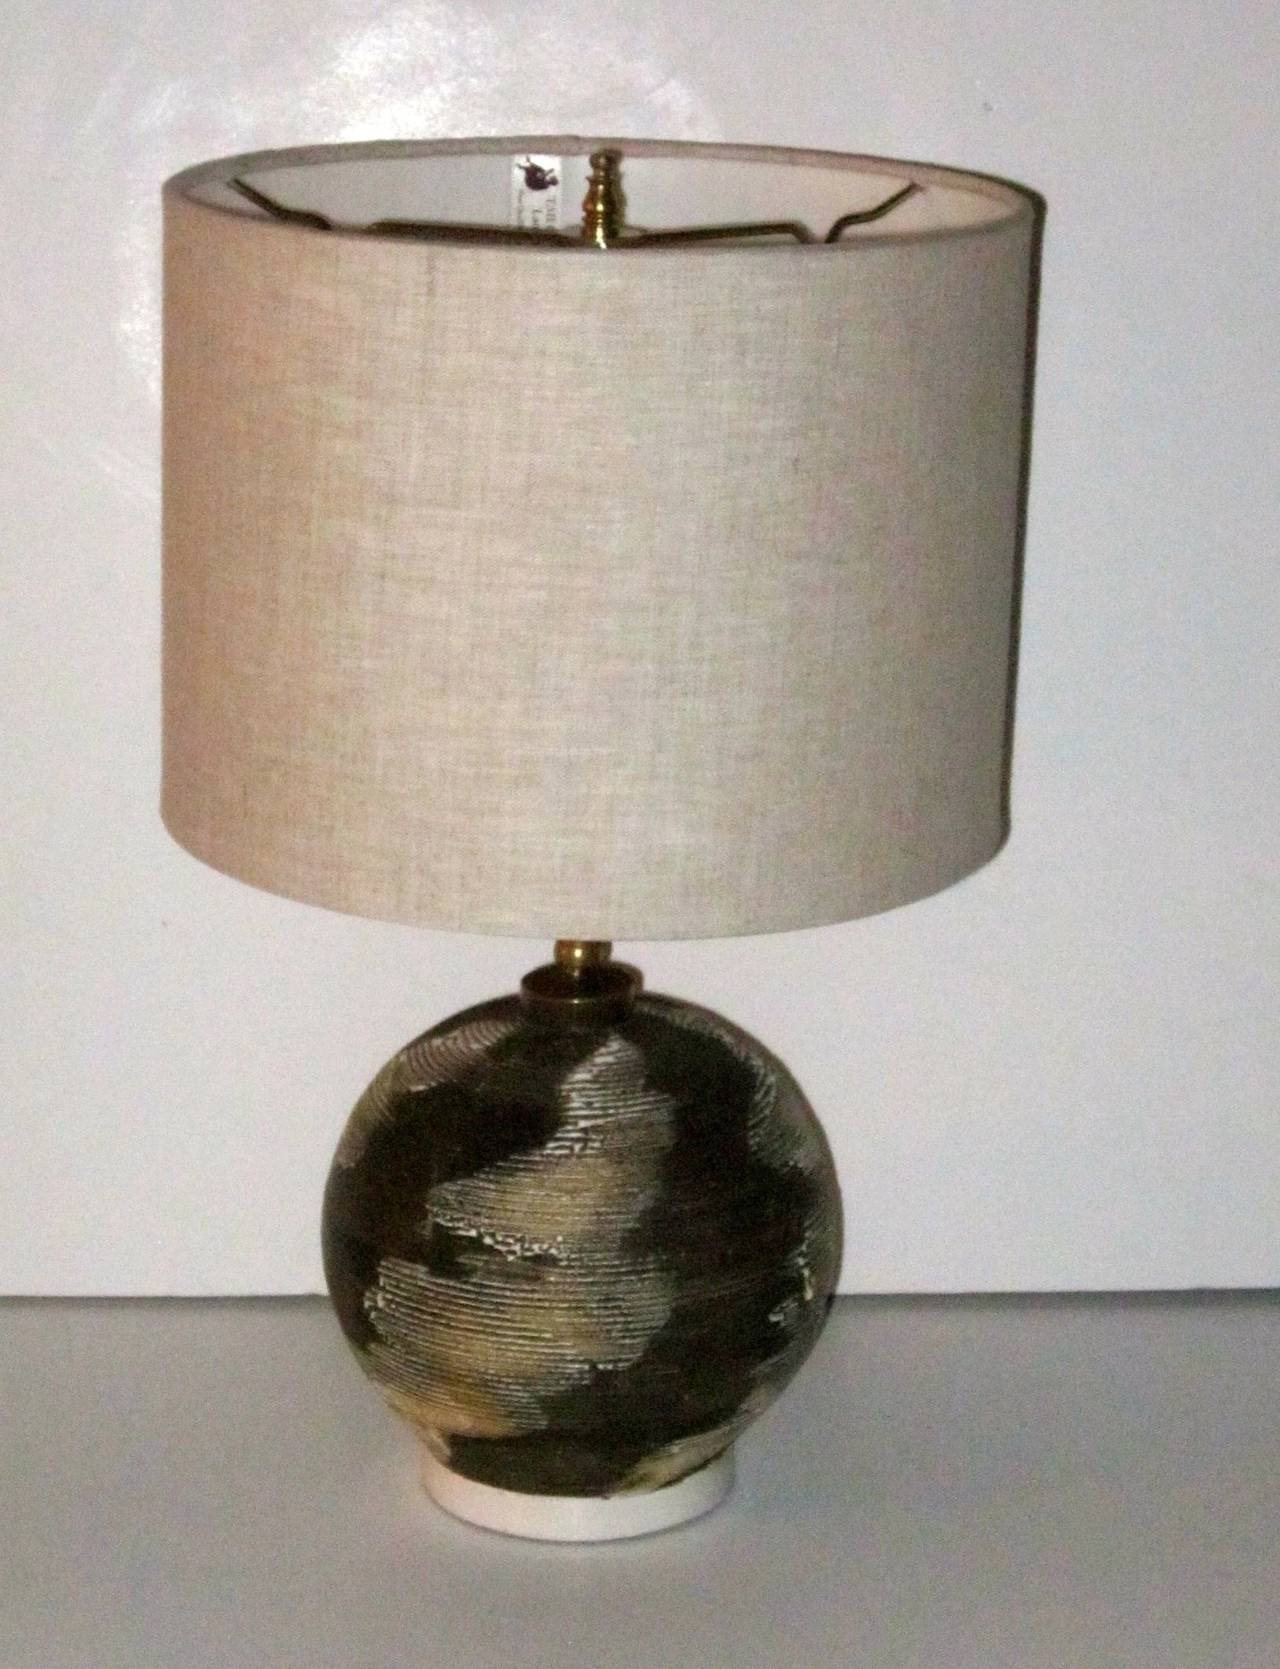 1940s French brown and cream textured small desk lamp. The six inch diameter lamp has a textured globe pattern and a natural color linen shade.